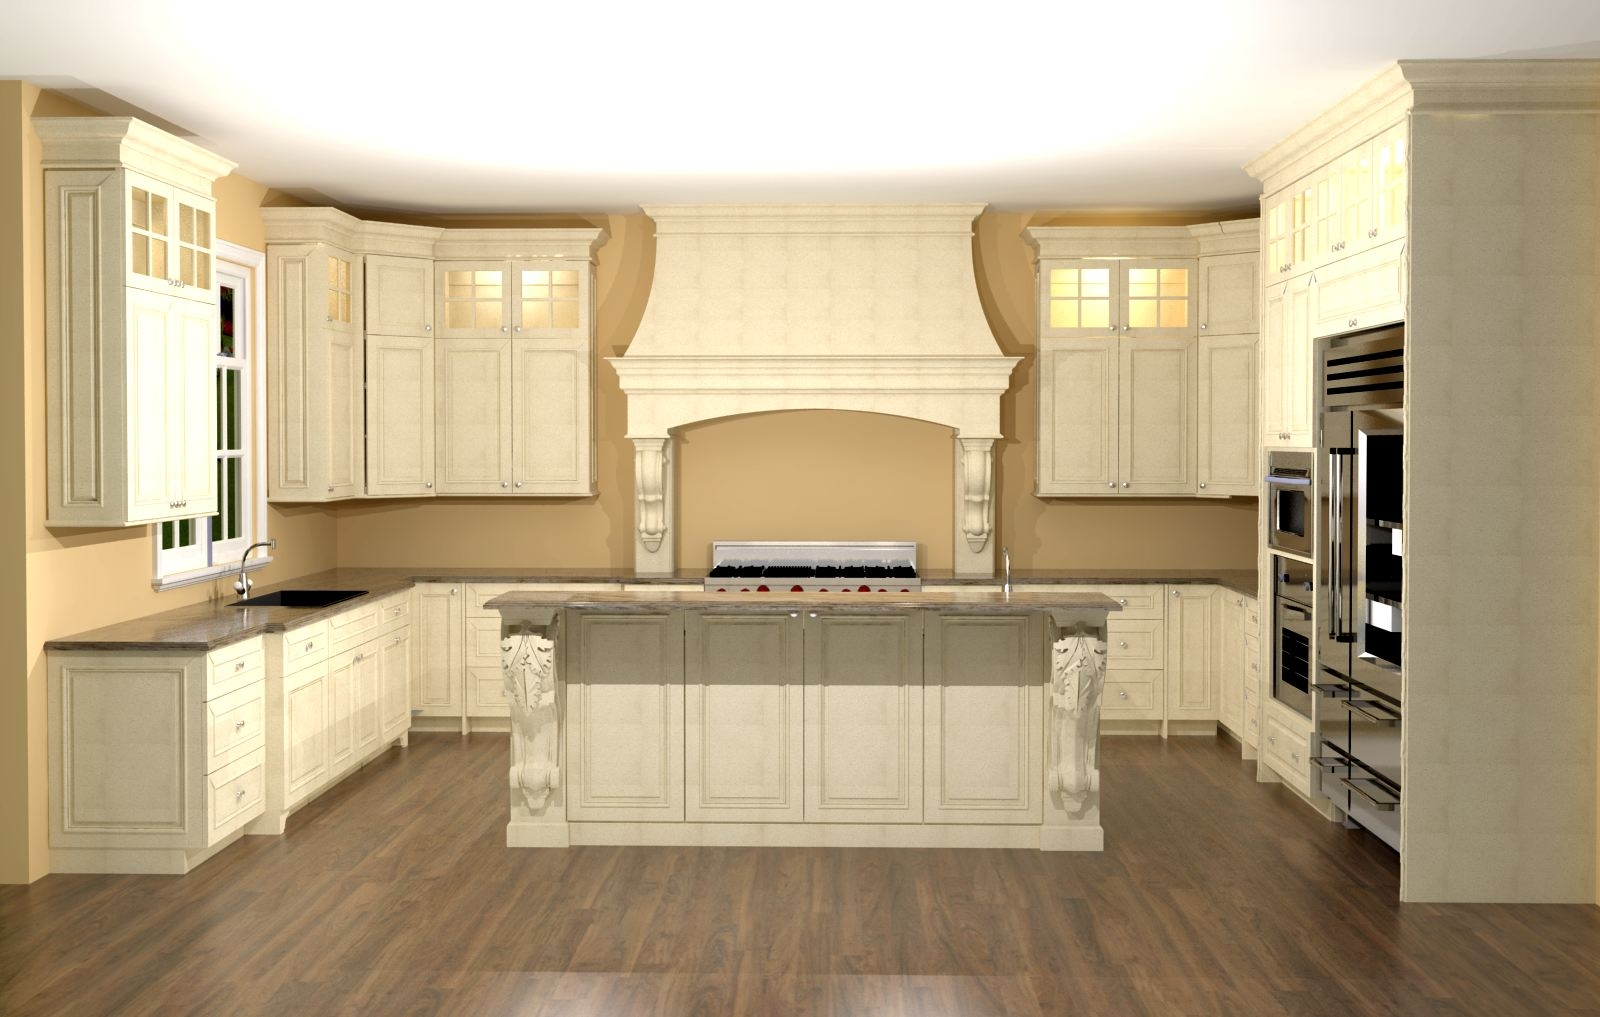 Island Kitchen Cabinets Designlarge kitchen with custom hood features large enkeboll corbels on